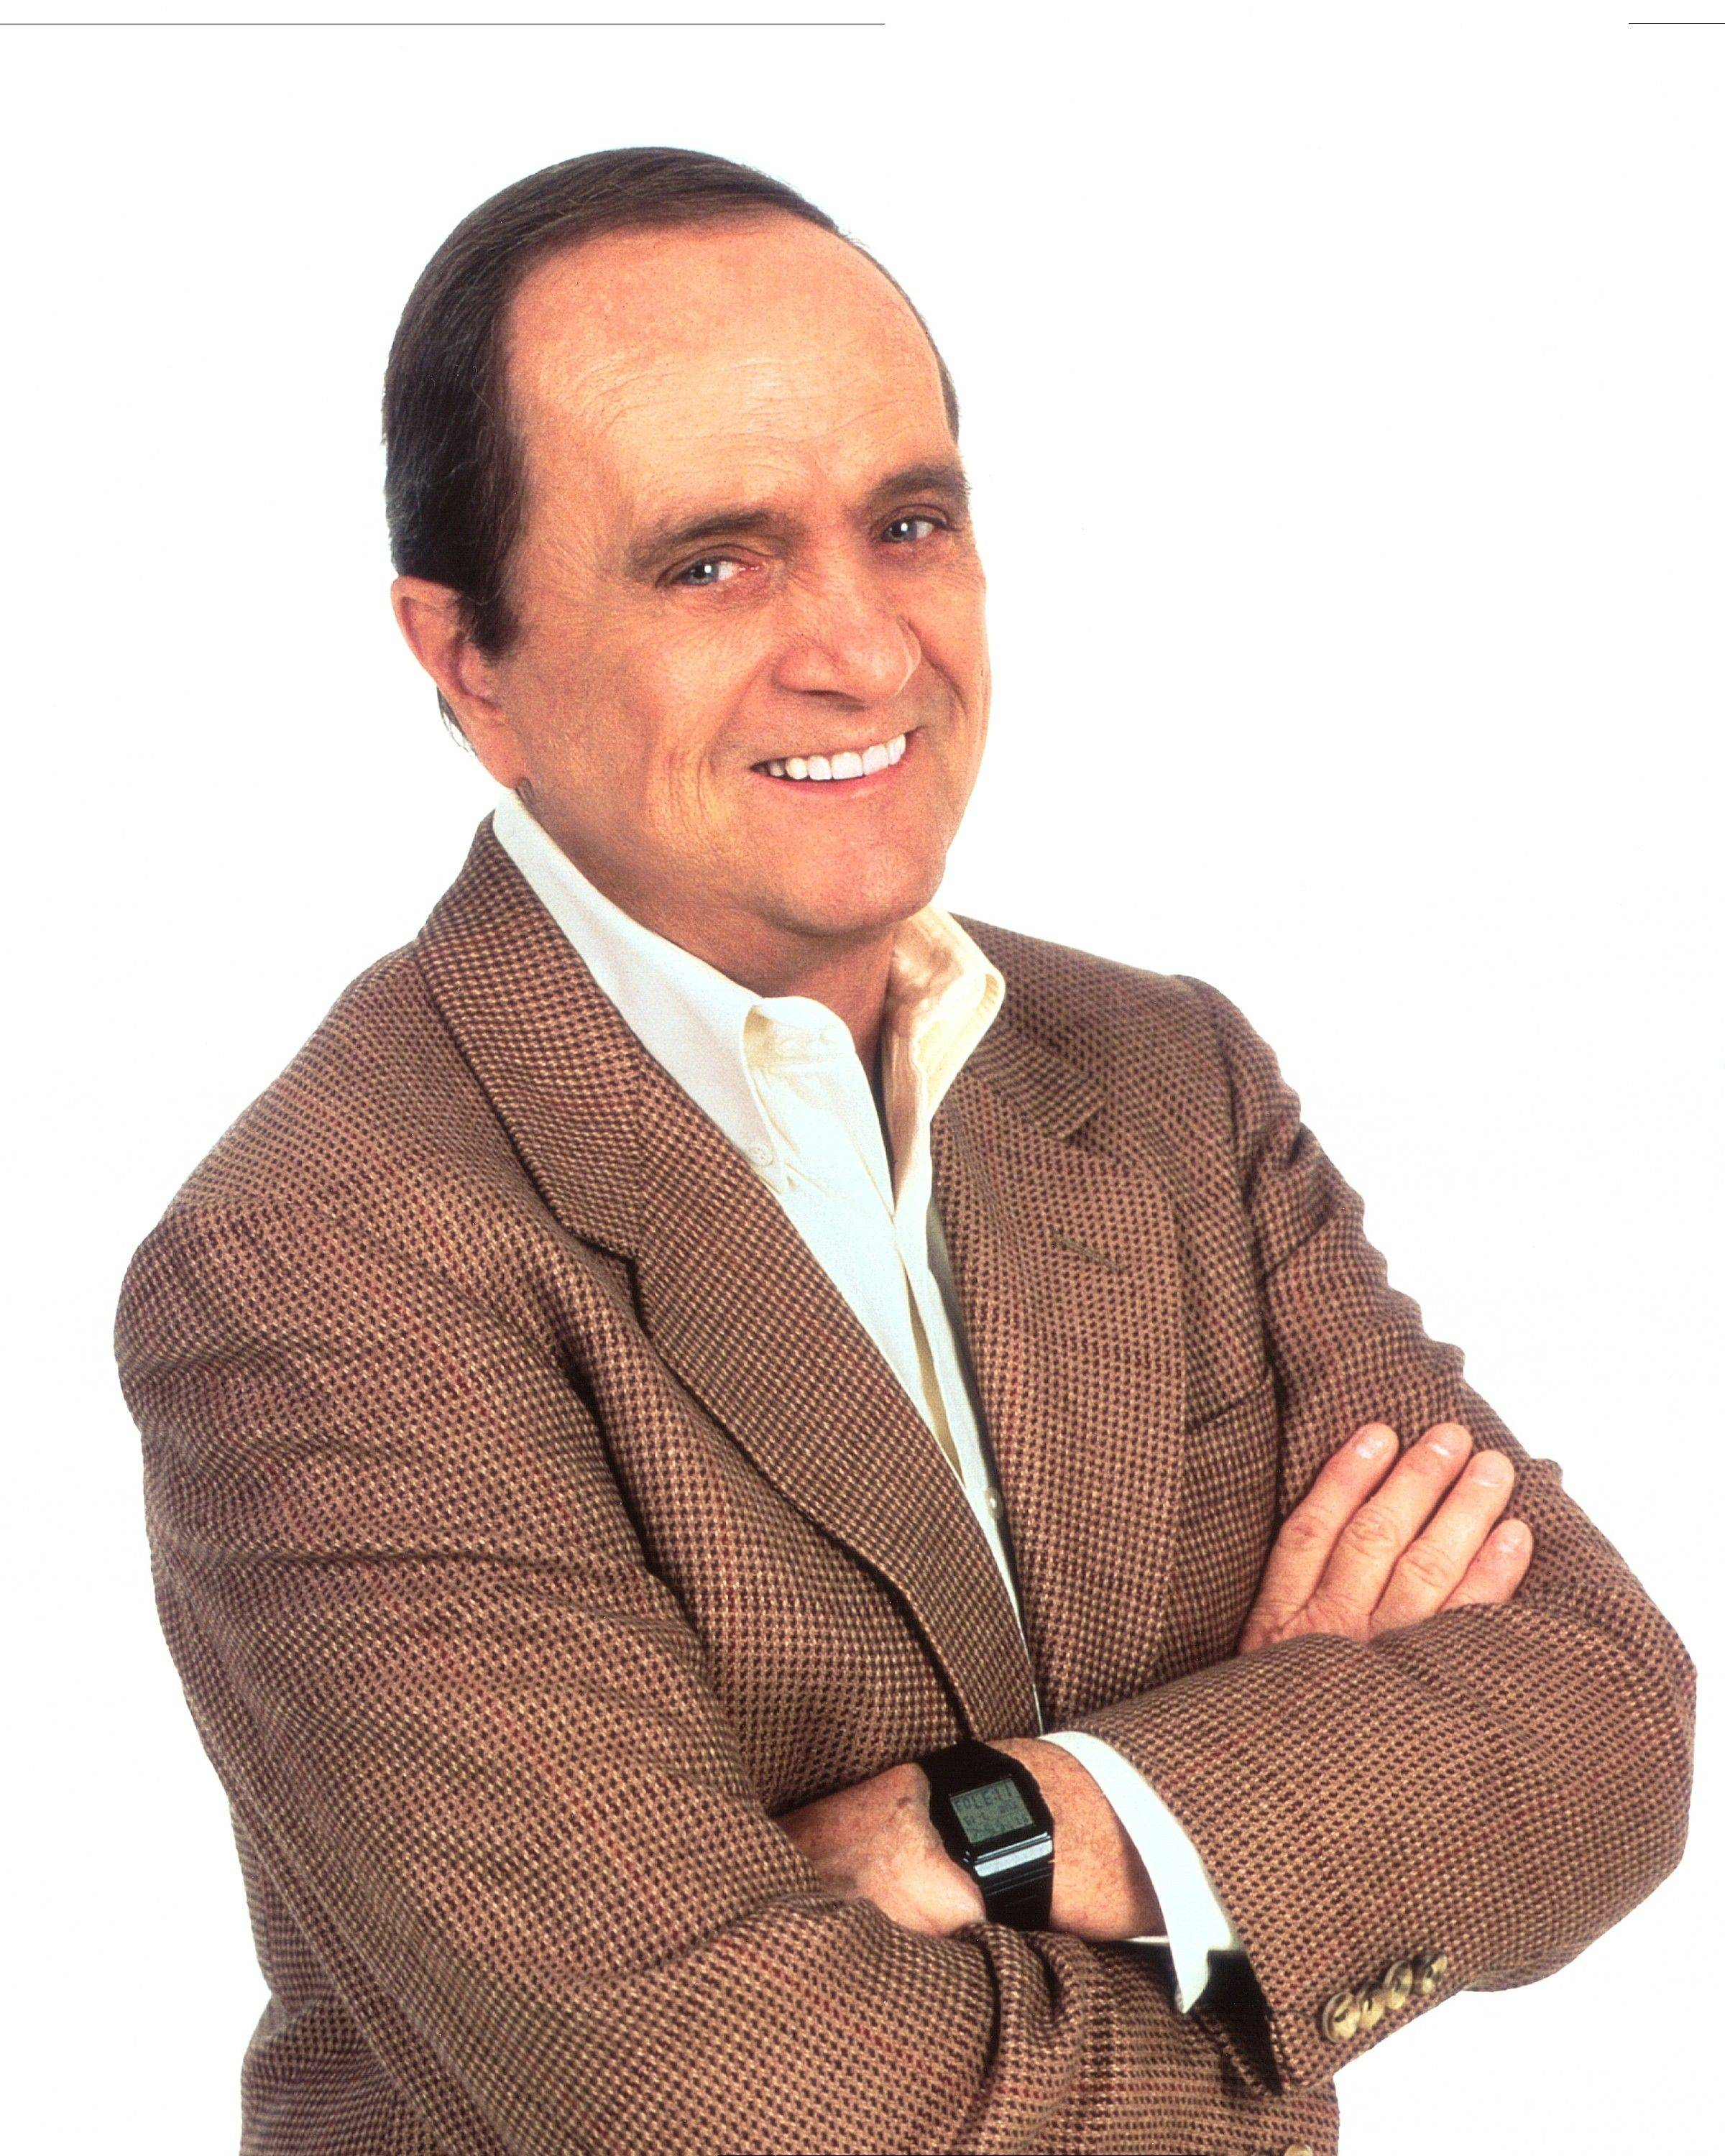 Comedian Bob Newhart will perform at the Chicago Theatre on Saturday, Oct. 22.